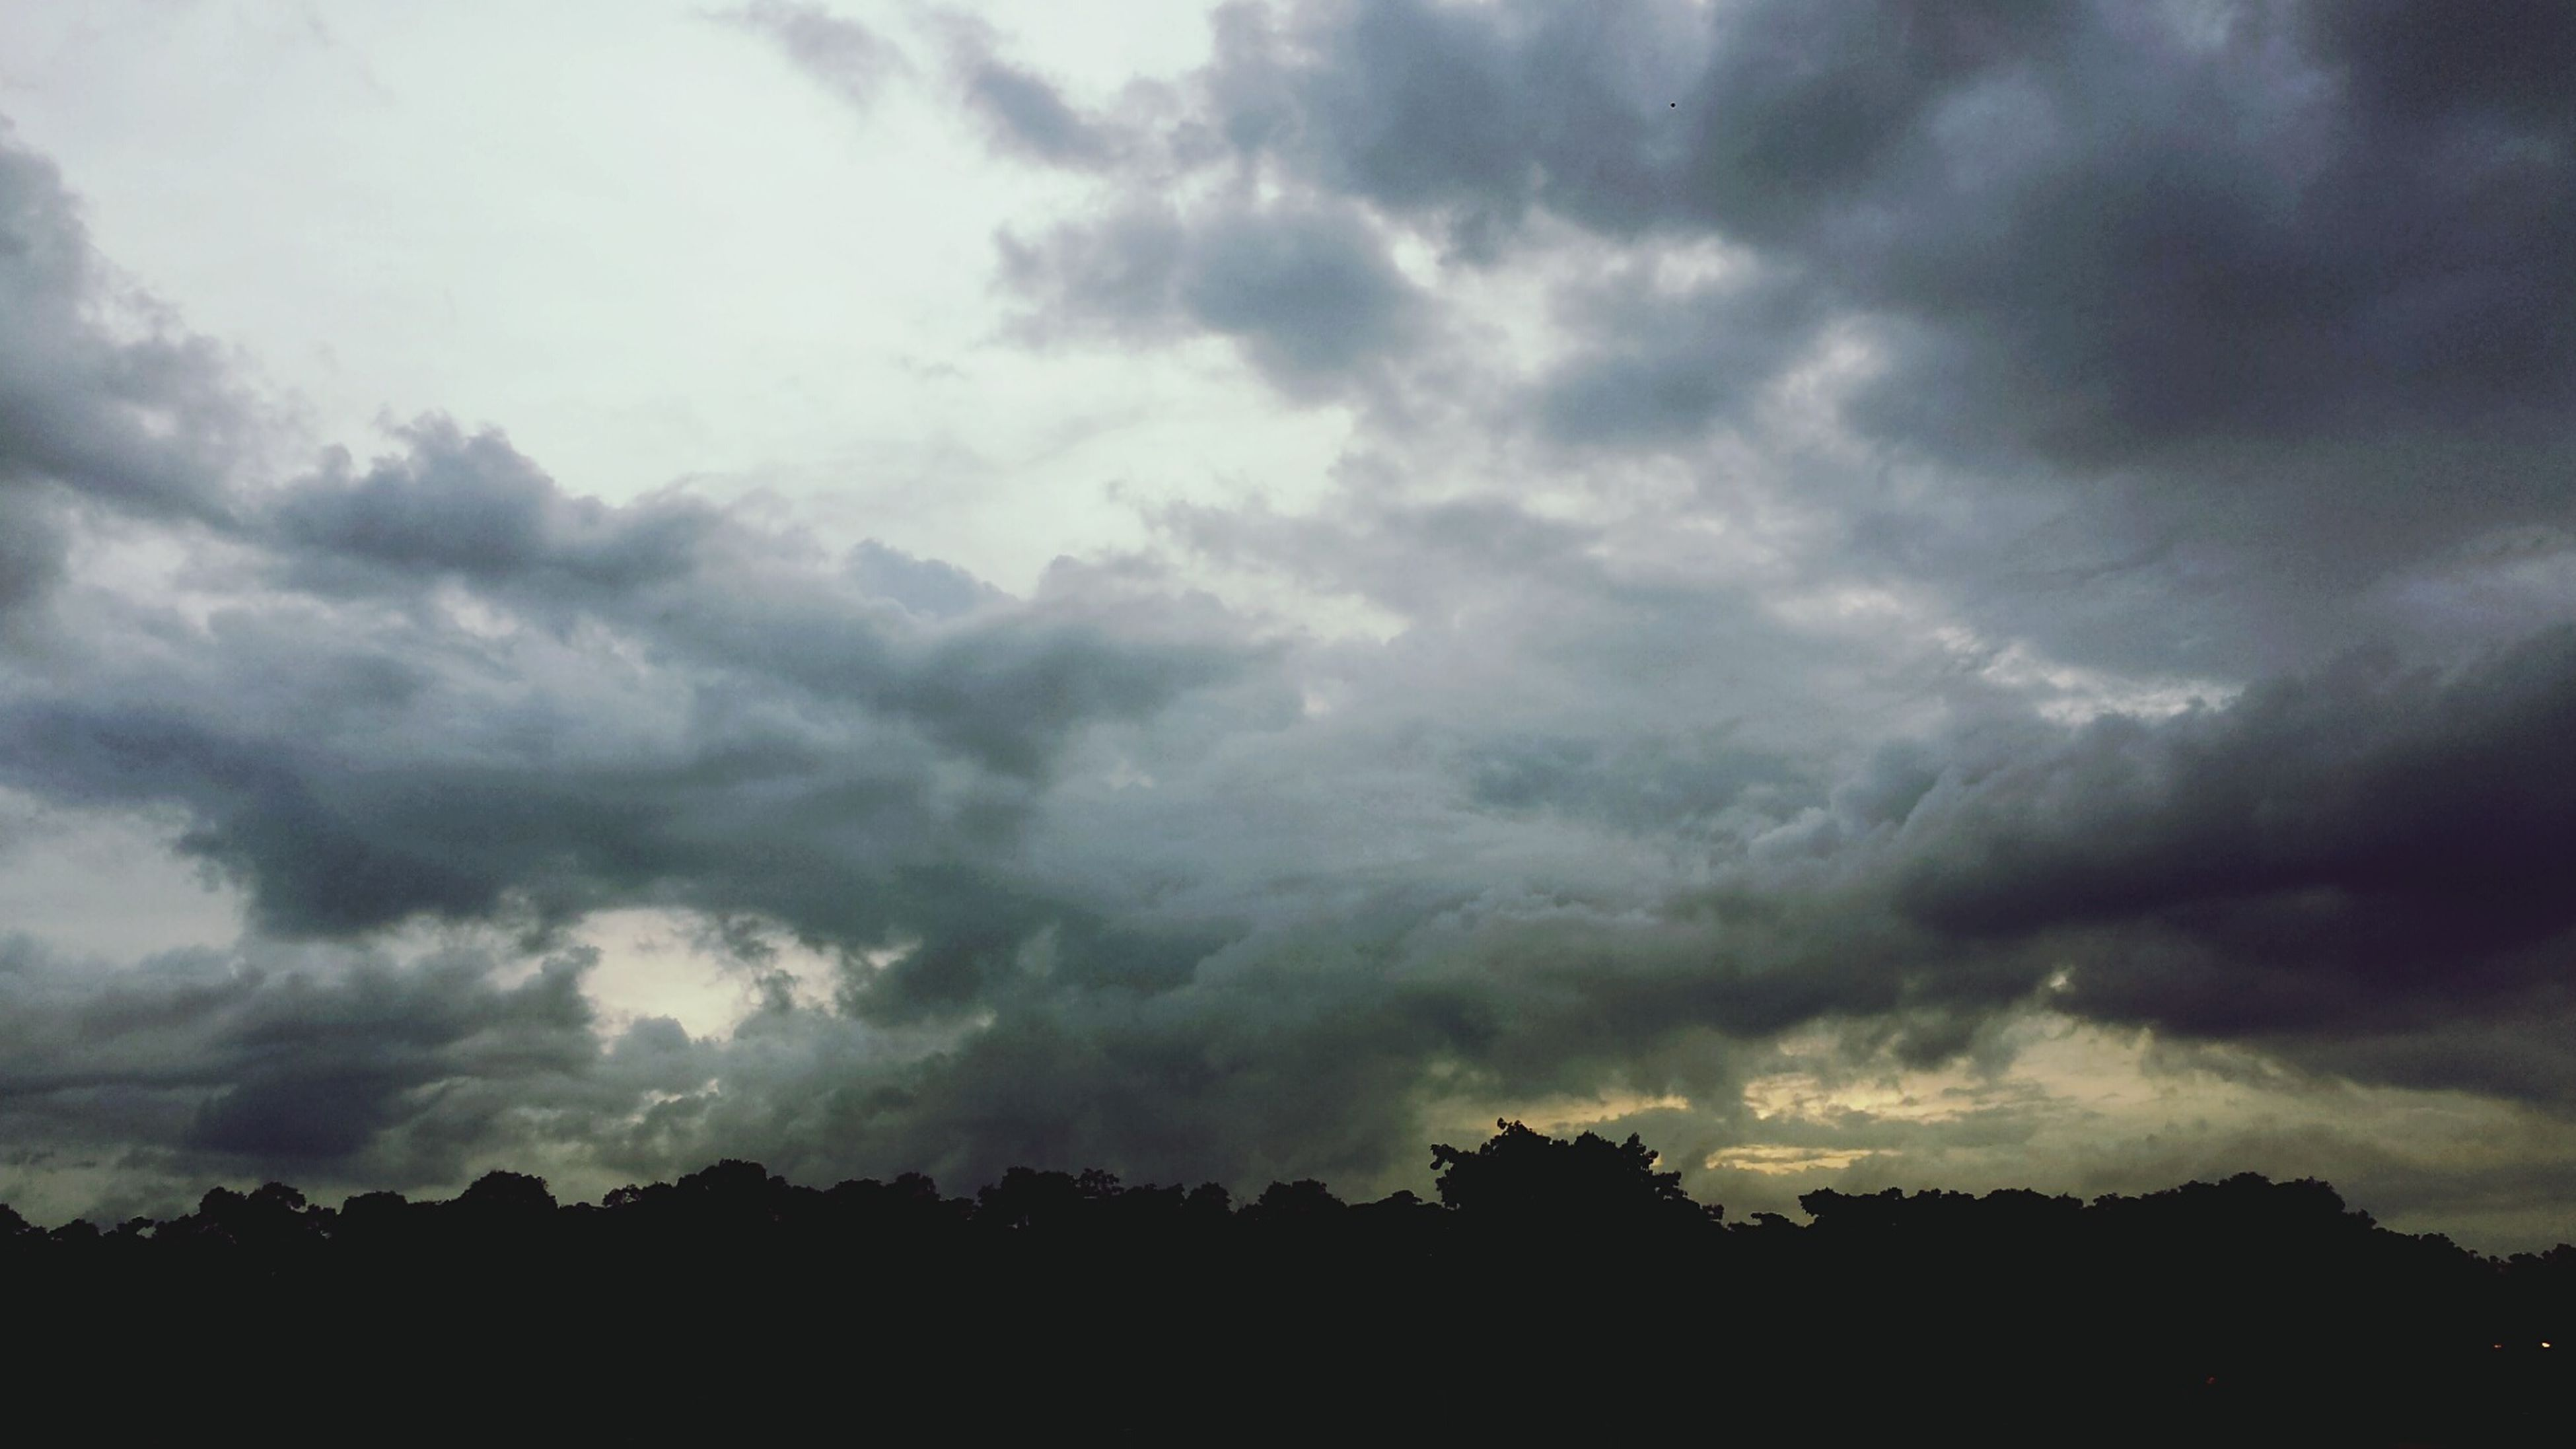 sky, cloud - sky, cloudy, silhouette, weather, overcast, storm cloud, scenics, beauty in nature, tranquility, tranquil scene, low angle view, nature, cloudscape, cloud, dusk, dramatic sky, atmospheric mood, outdoors, idyllic